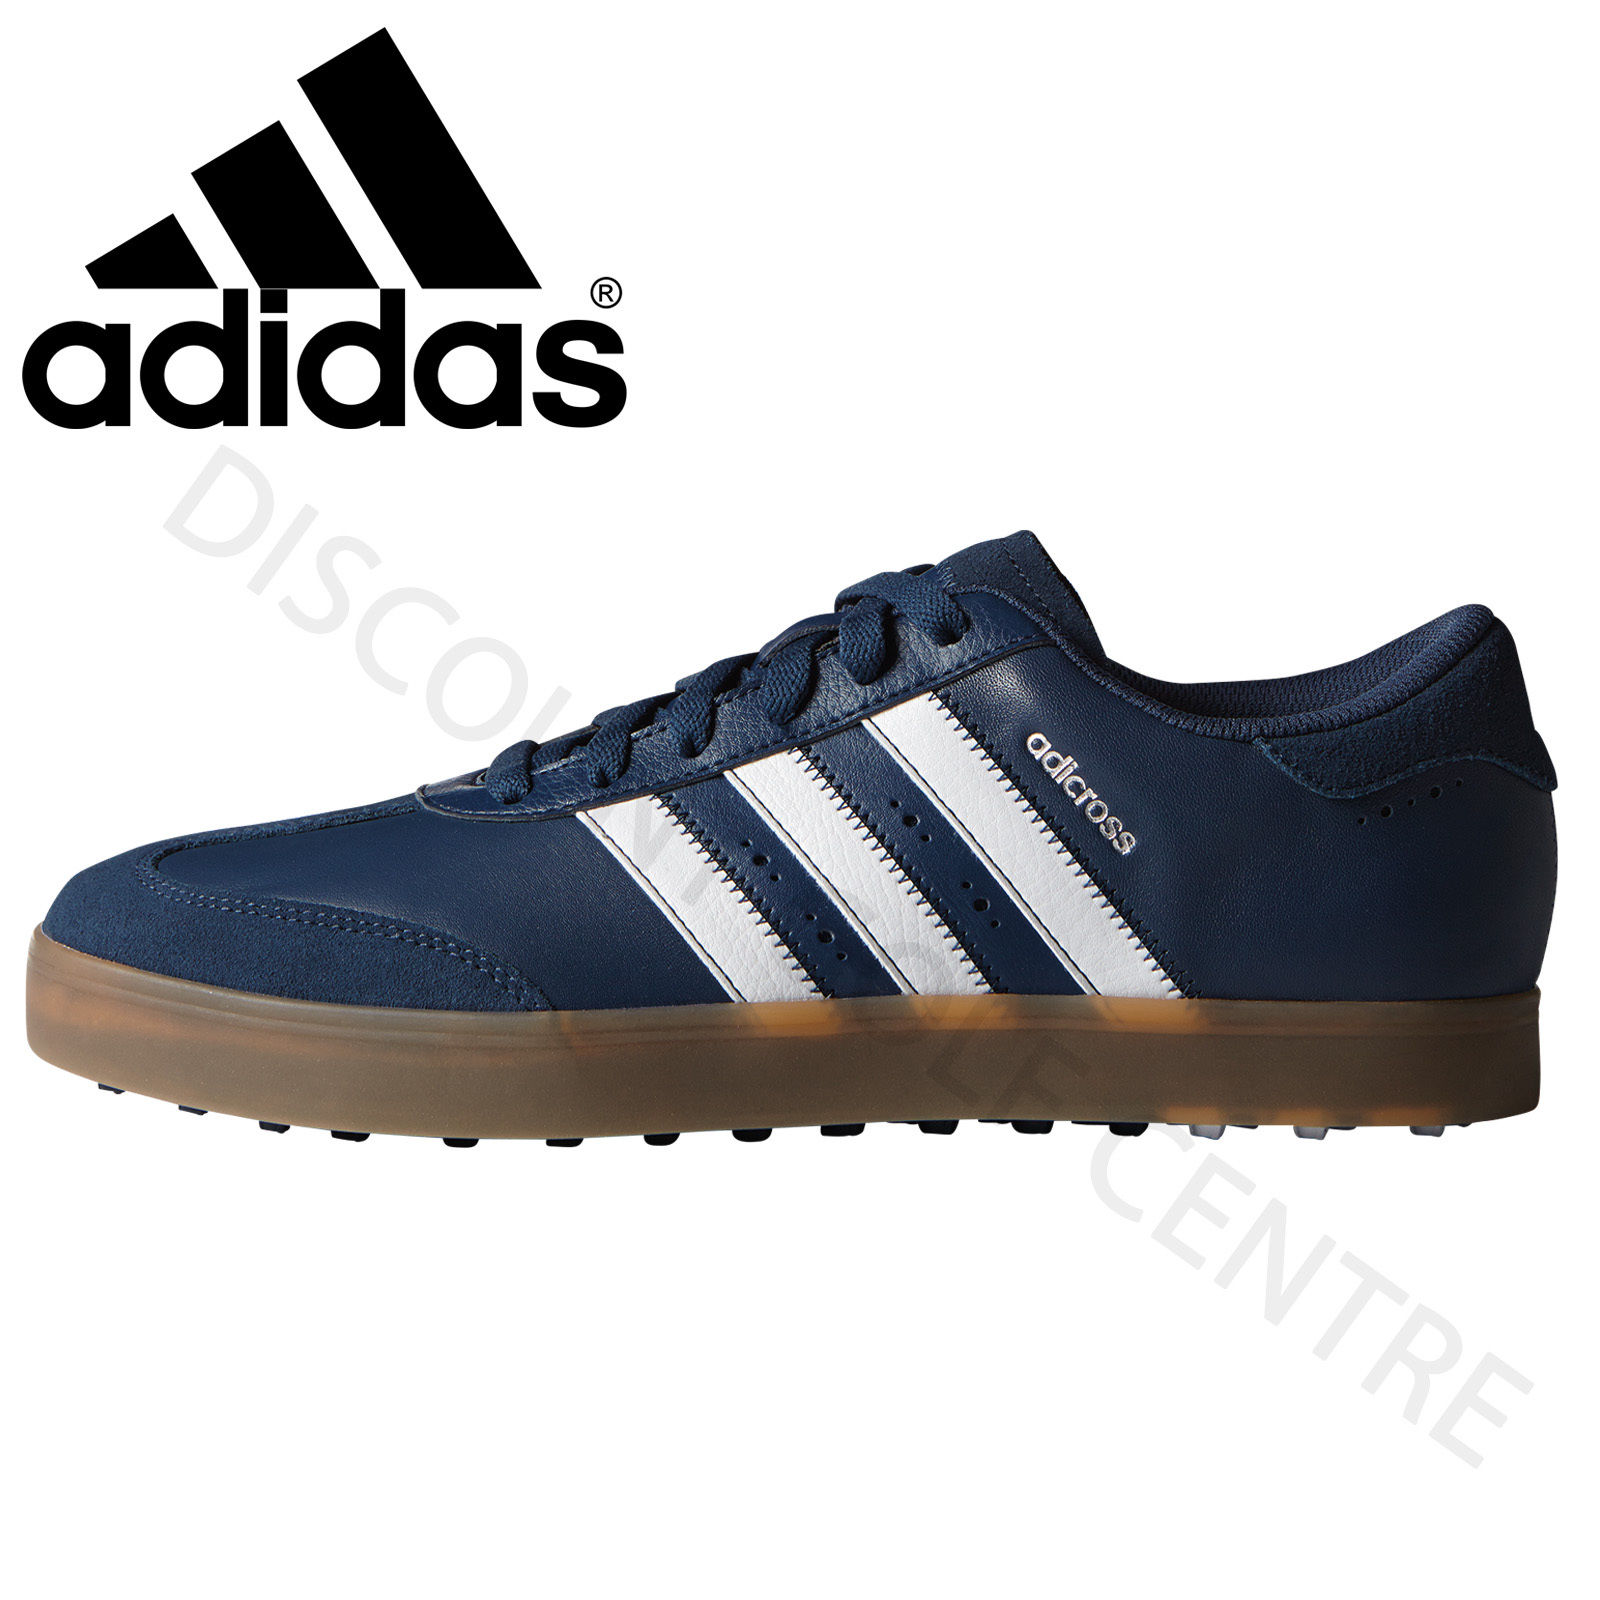 adidas adicross v spikeless mens golf shoes wide fitting